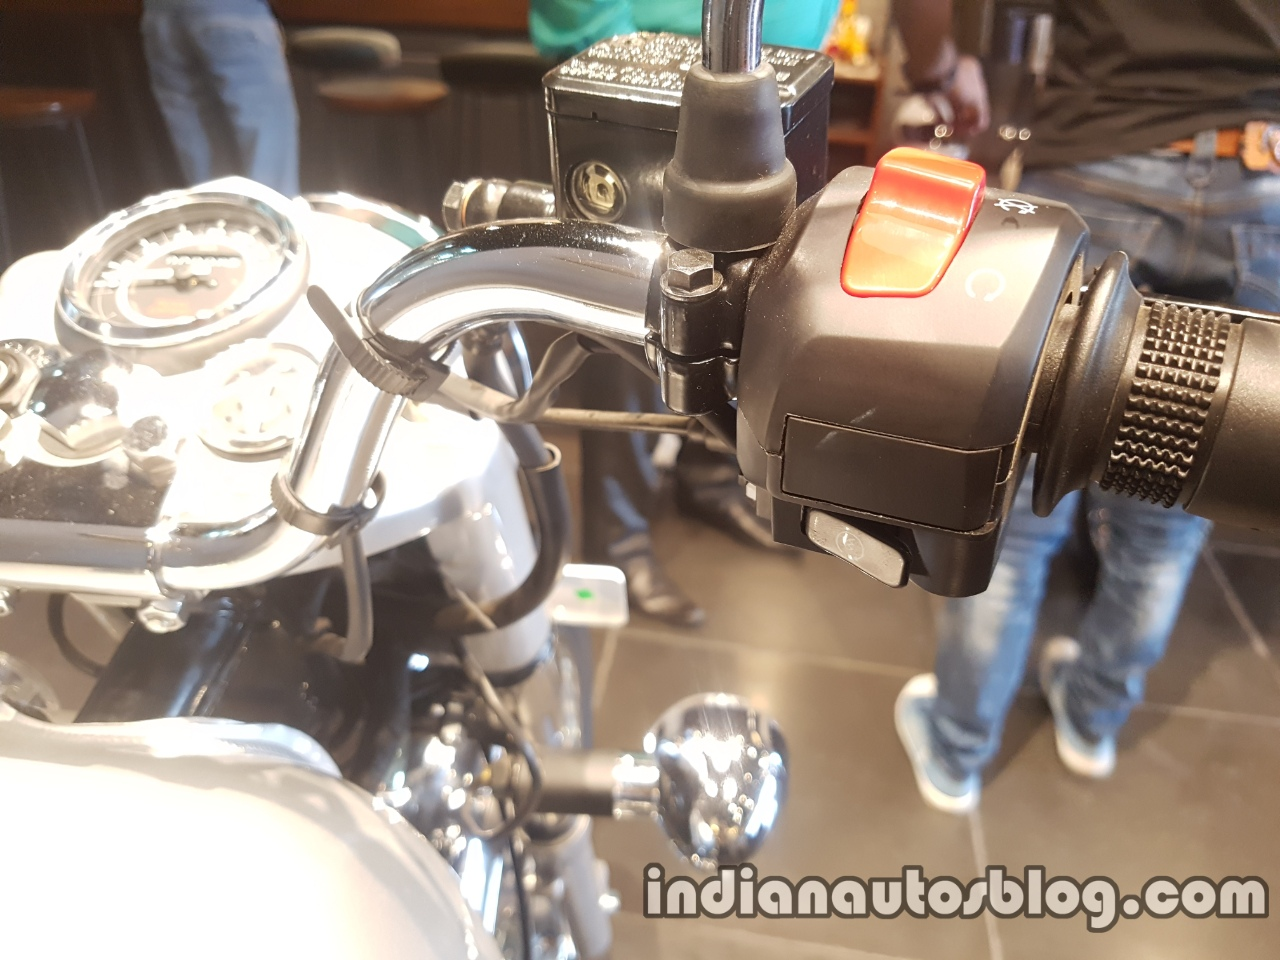 2017 Royal Enfield Bullet 350 ES reaches dealerships AHO no headlamp switch